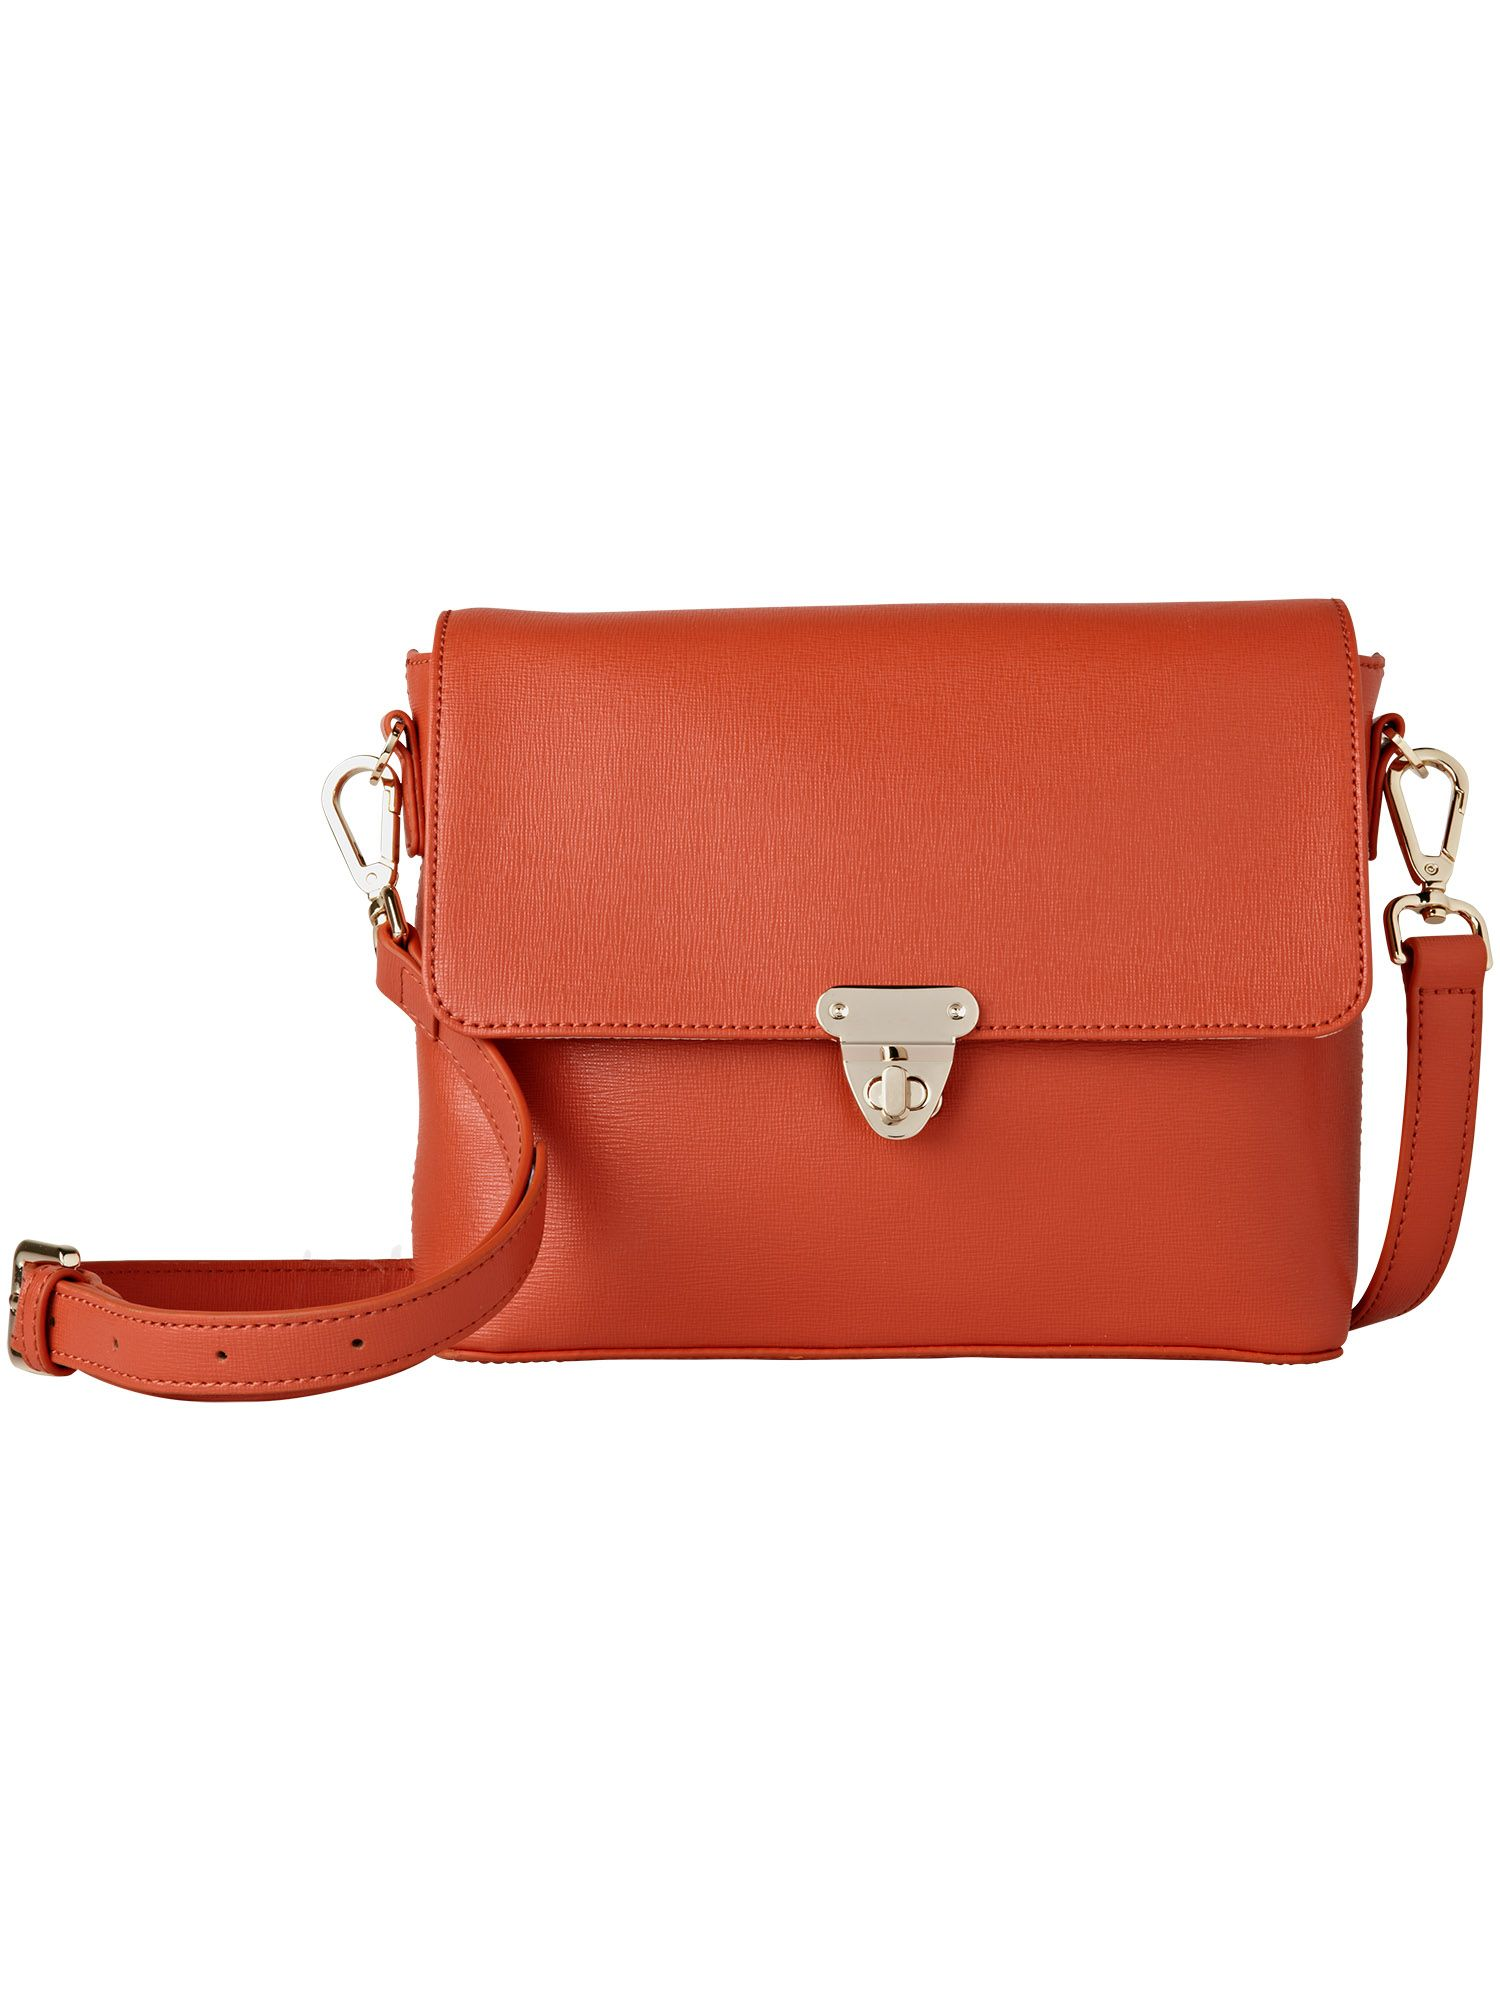 Georgie leather shoulder bag